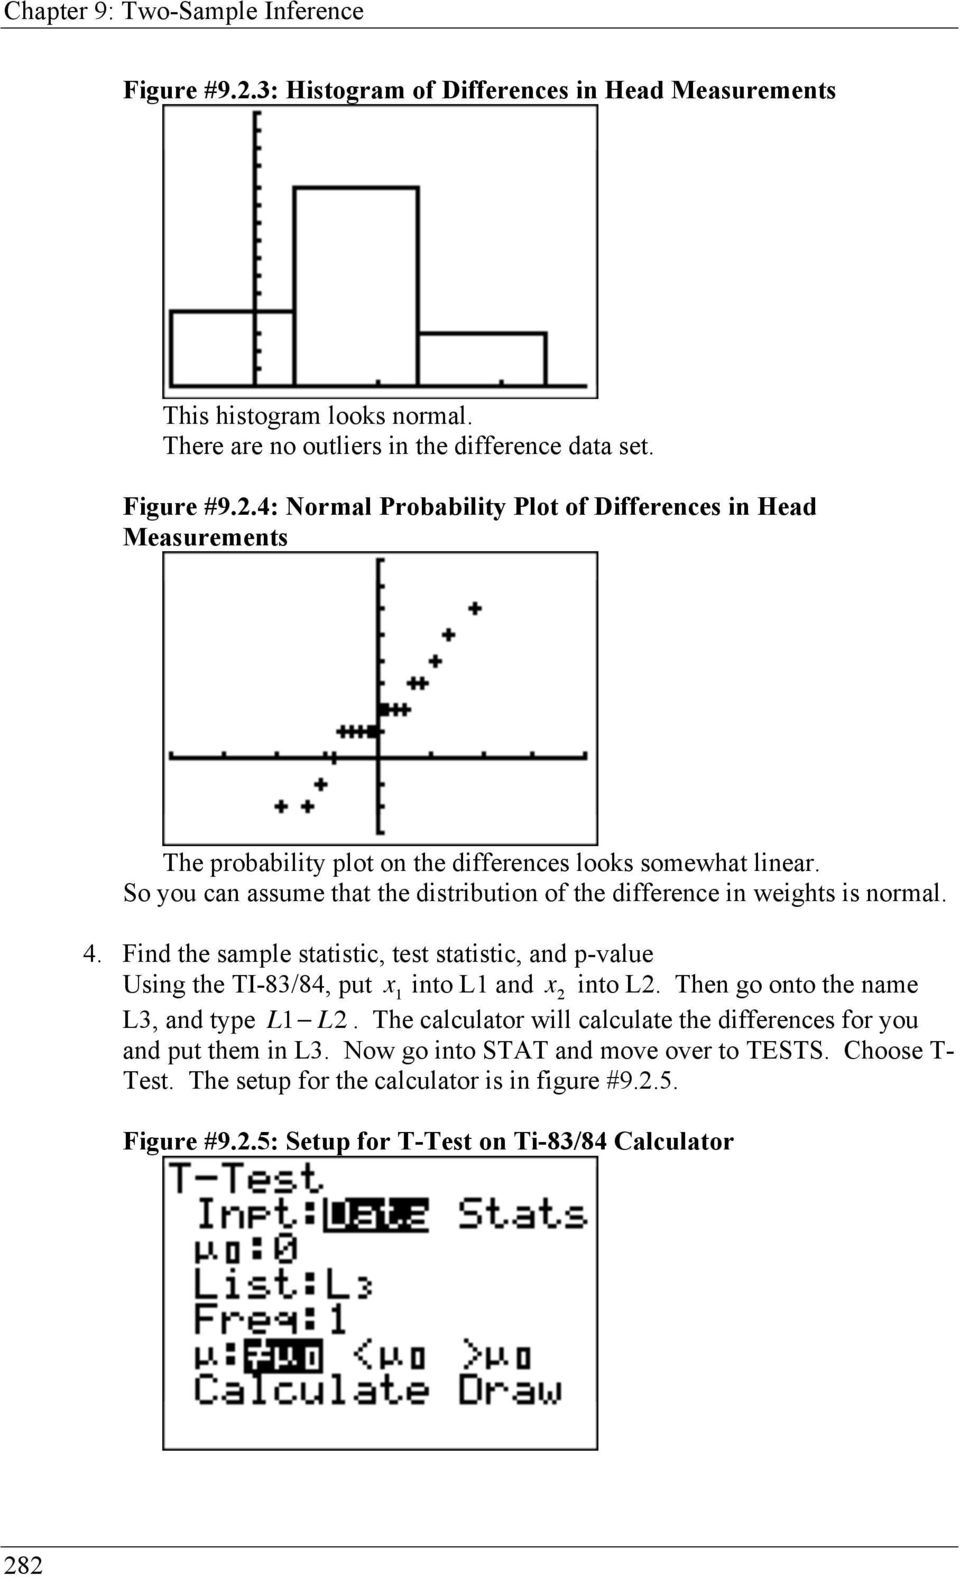 Find the sample statistic, test statistic, and p-value Using the TI-83/84, put x 1 into L1 and x 2 into L2. Then go onto the name L3, and type L1 L2.